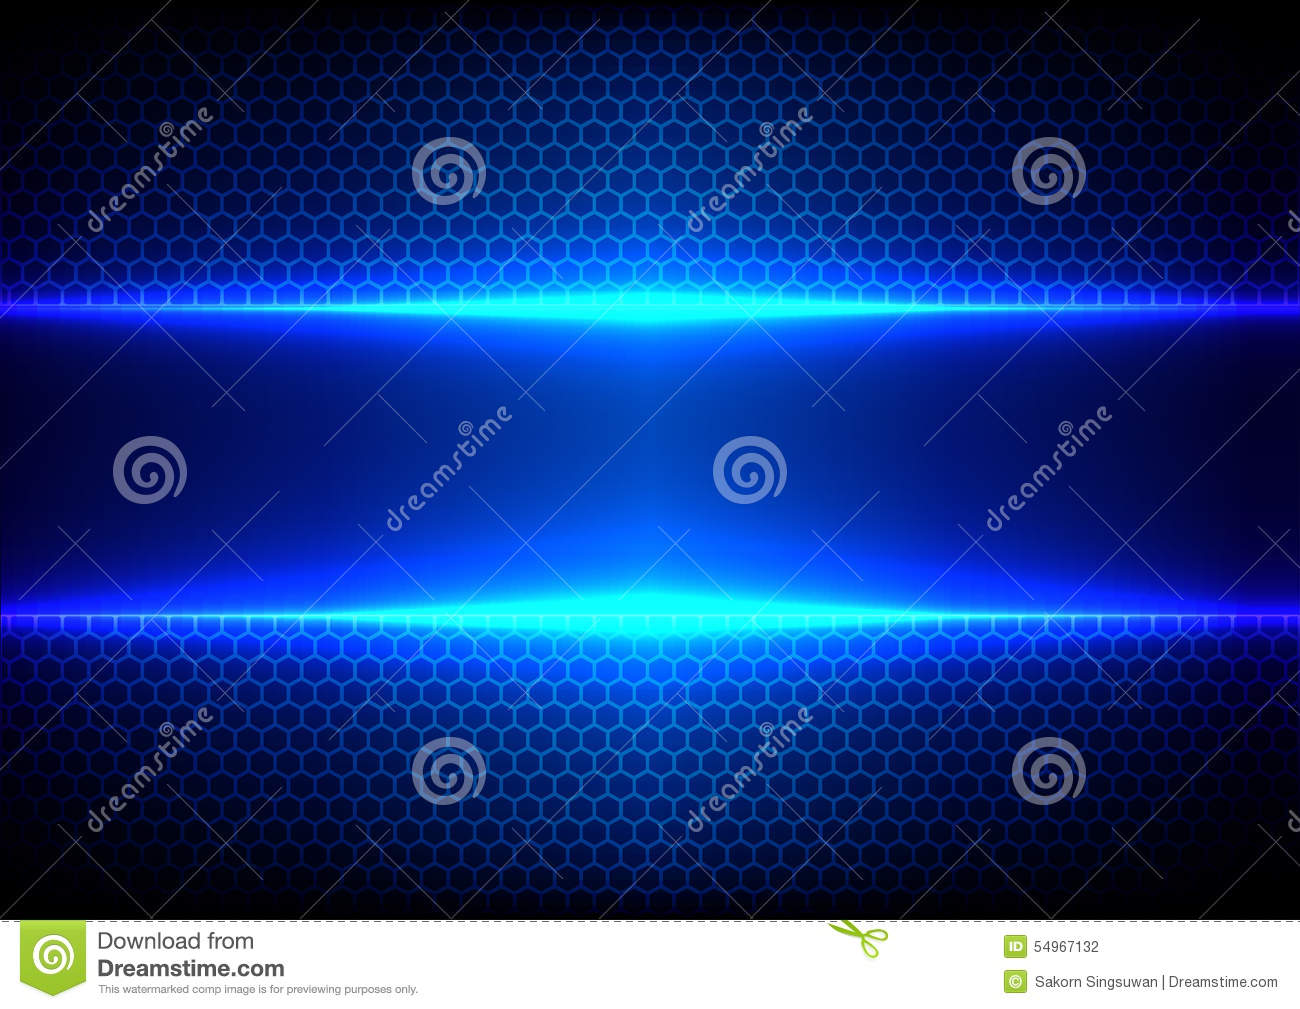 Abstract Technology Background With Light Effect: Abstract Hex Light Blue Effect Blue Technology Stock